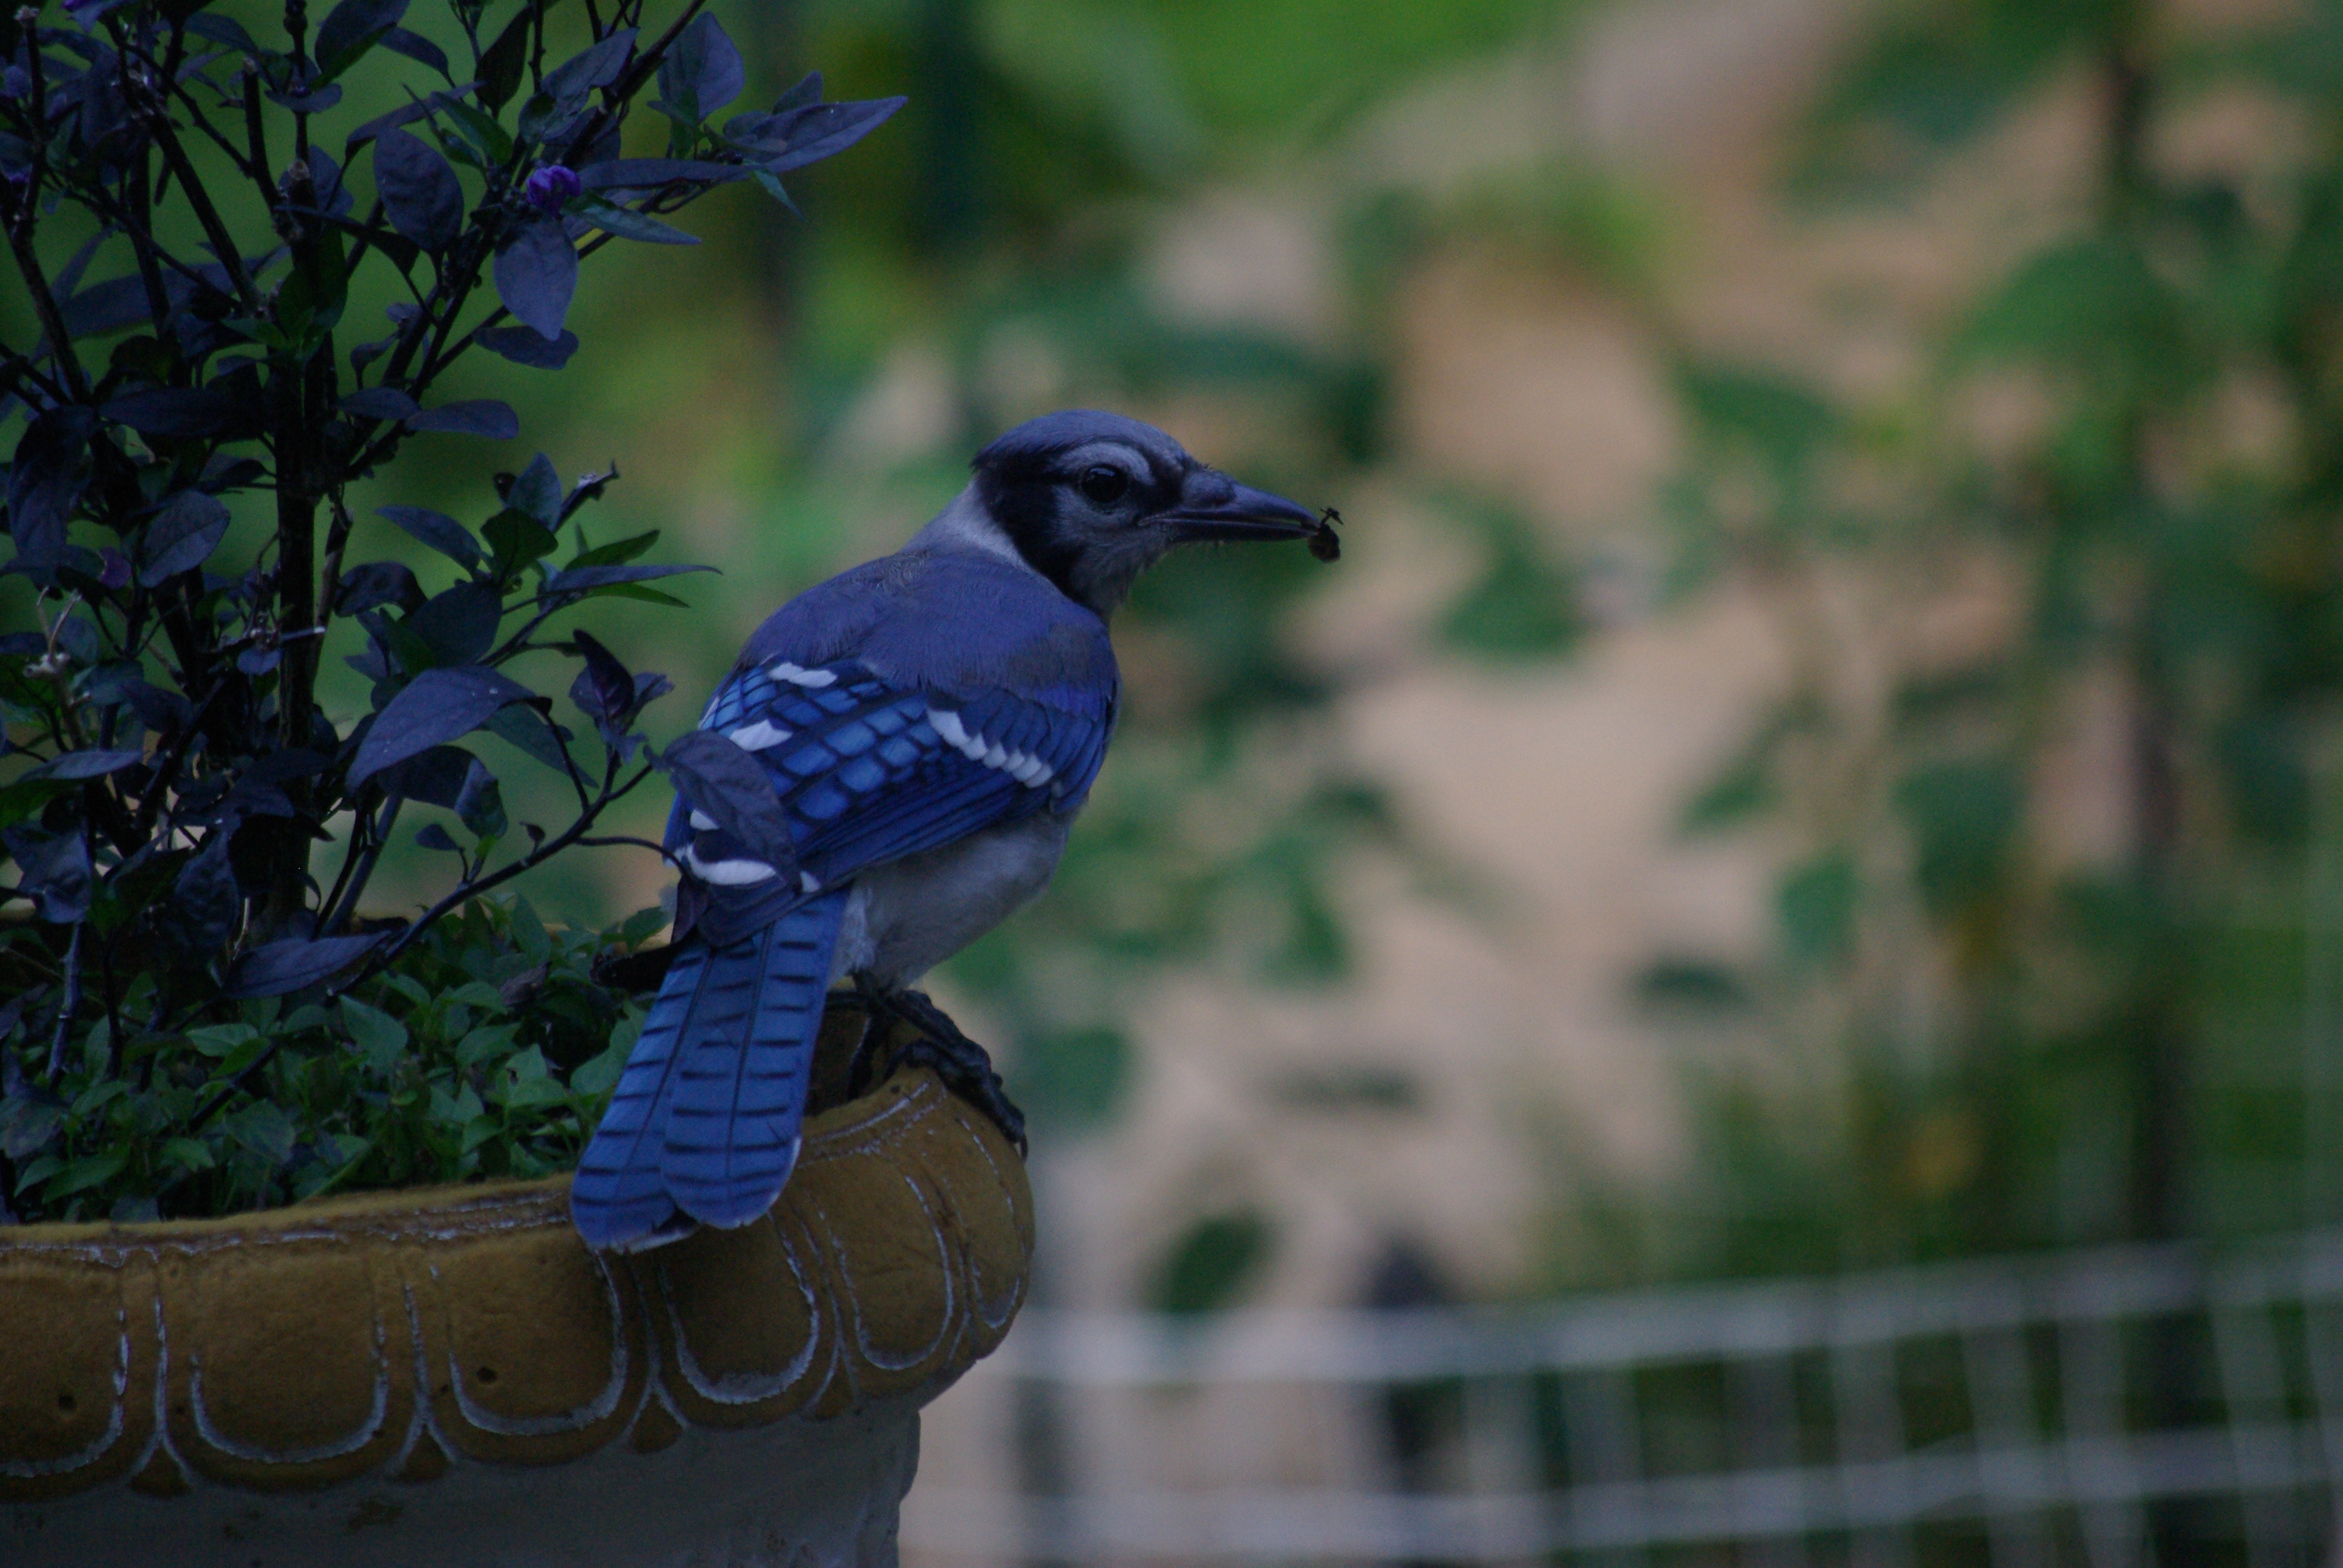 With her prize, the blue jay heads for its dining area in the live oak.